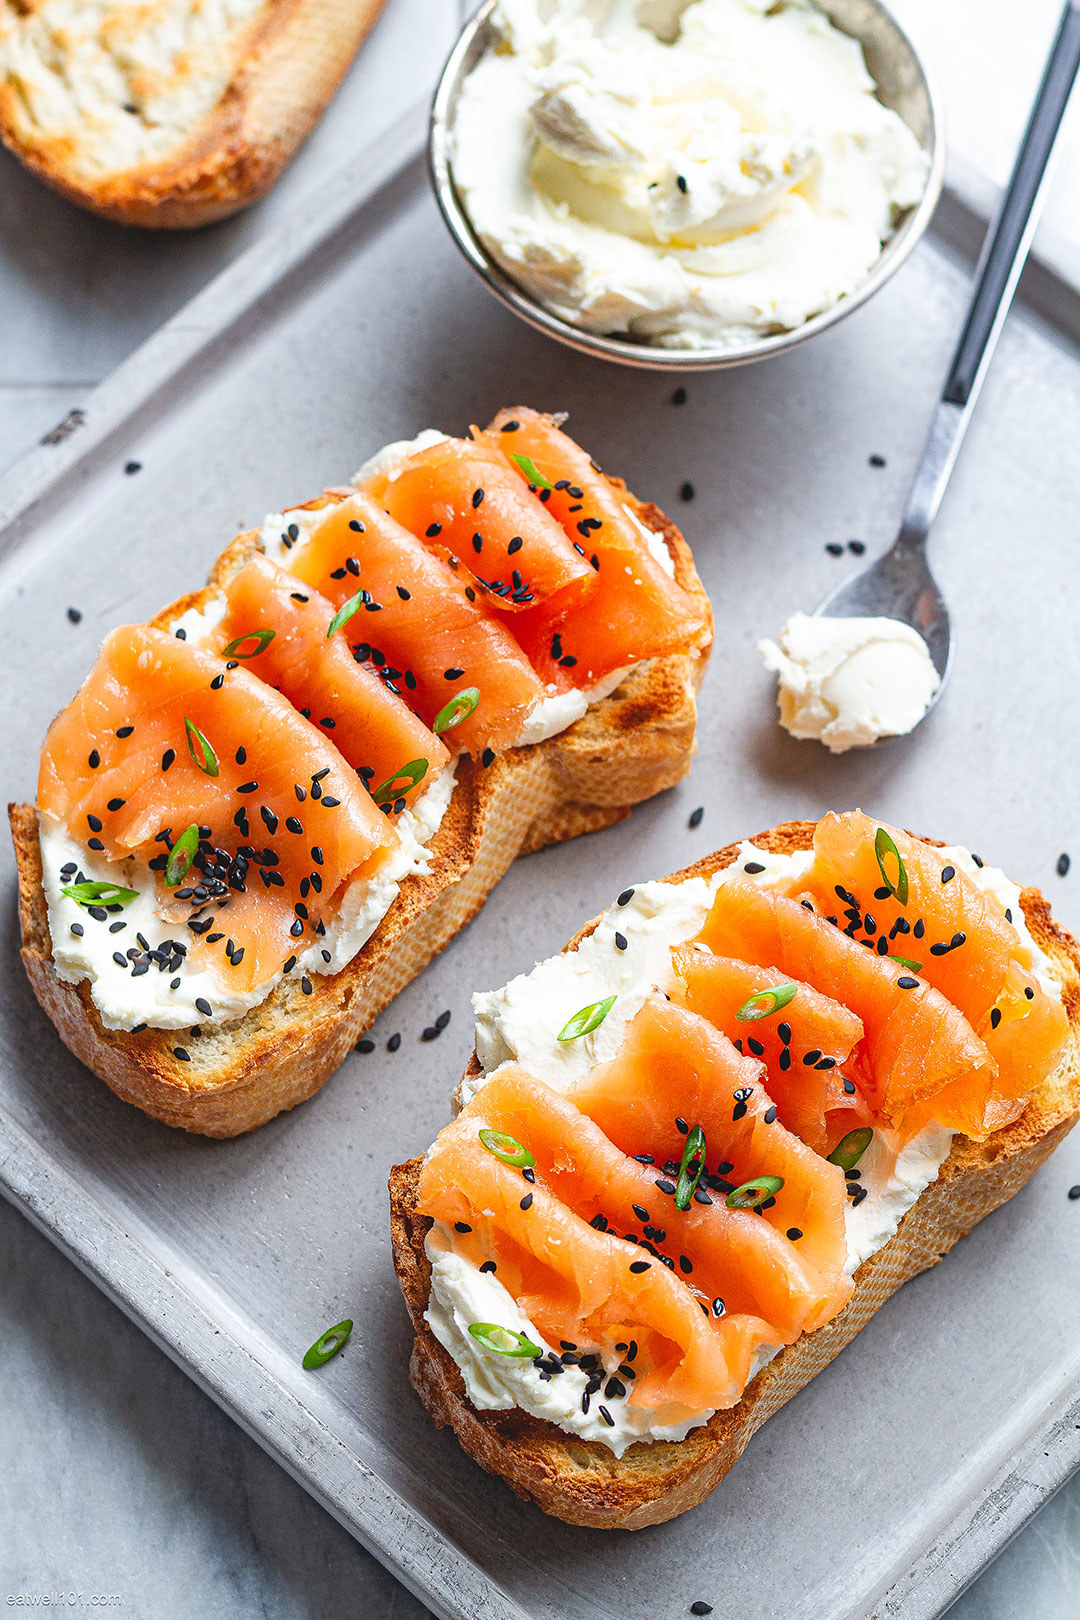 Two slices of thick toast topped with whipped cream cheese, smoked salmon, sesame seeds, and scallions.